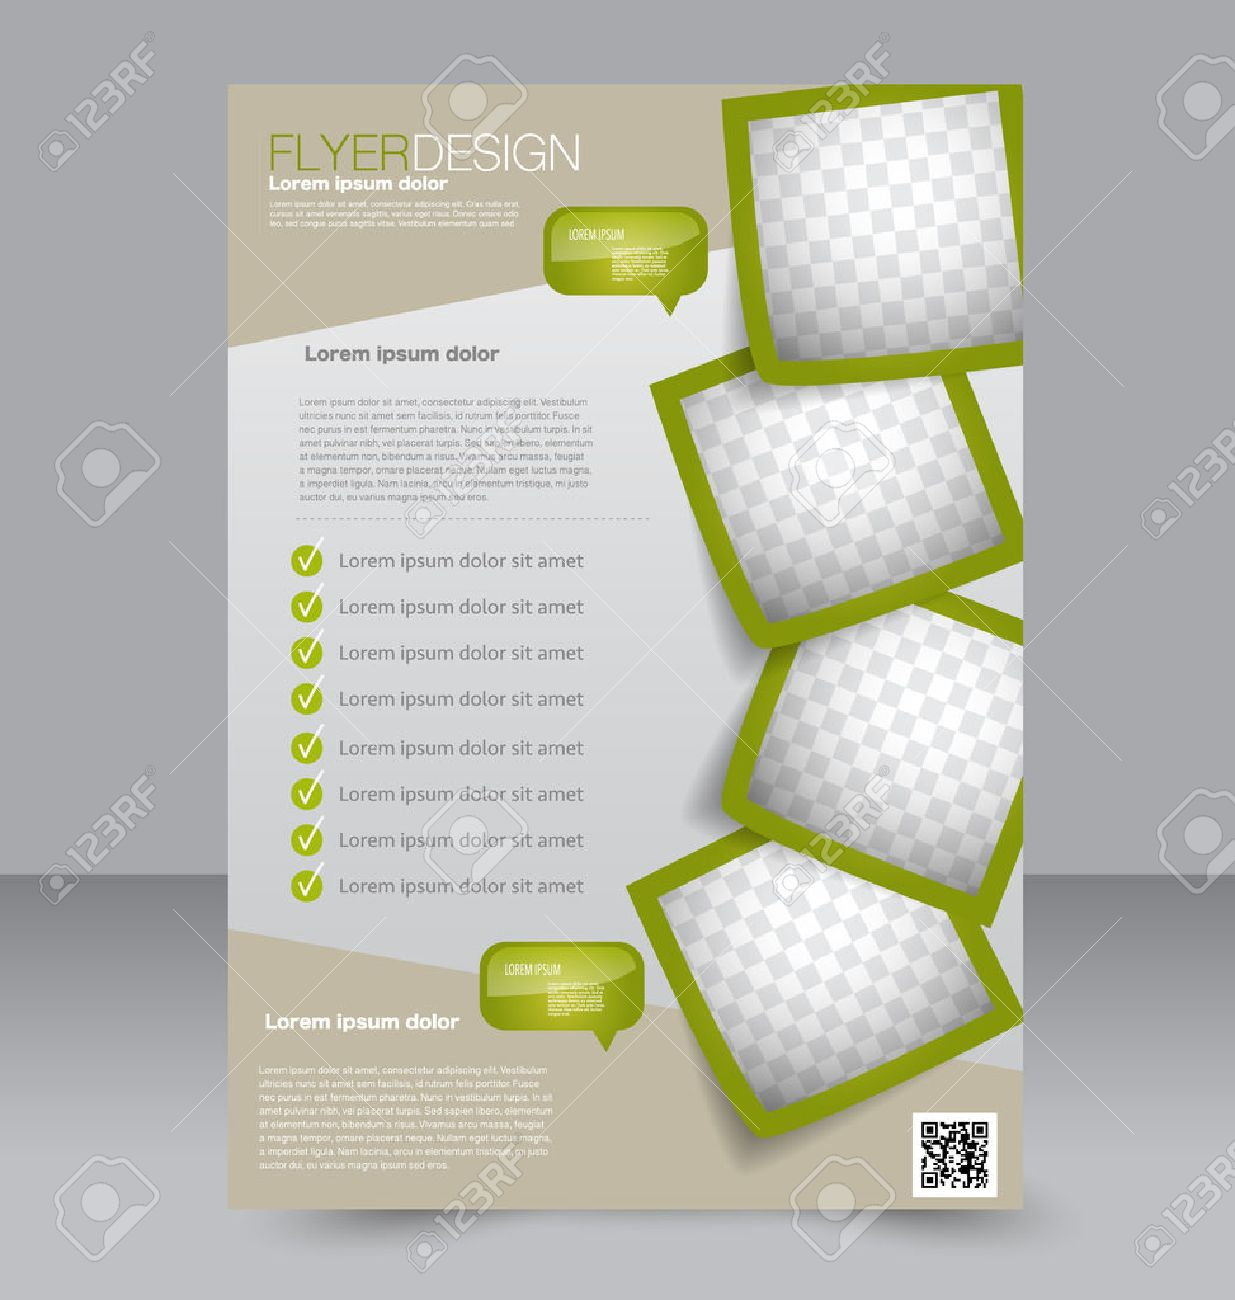 Flyer Template Brochure Design Editable A Poster For Business - Editable brochure templates